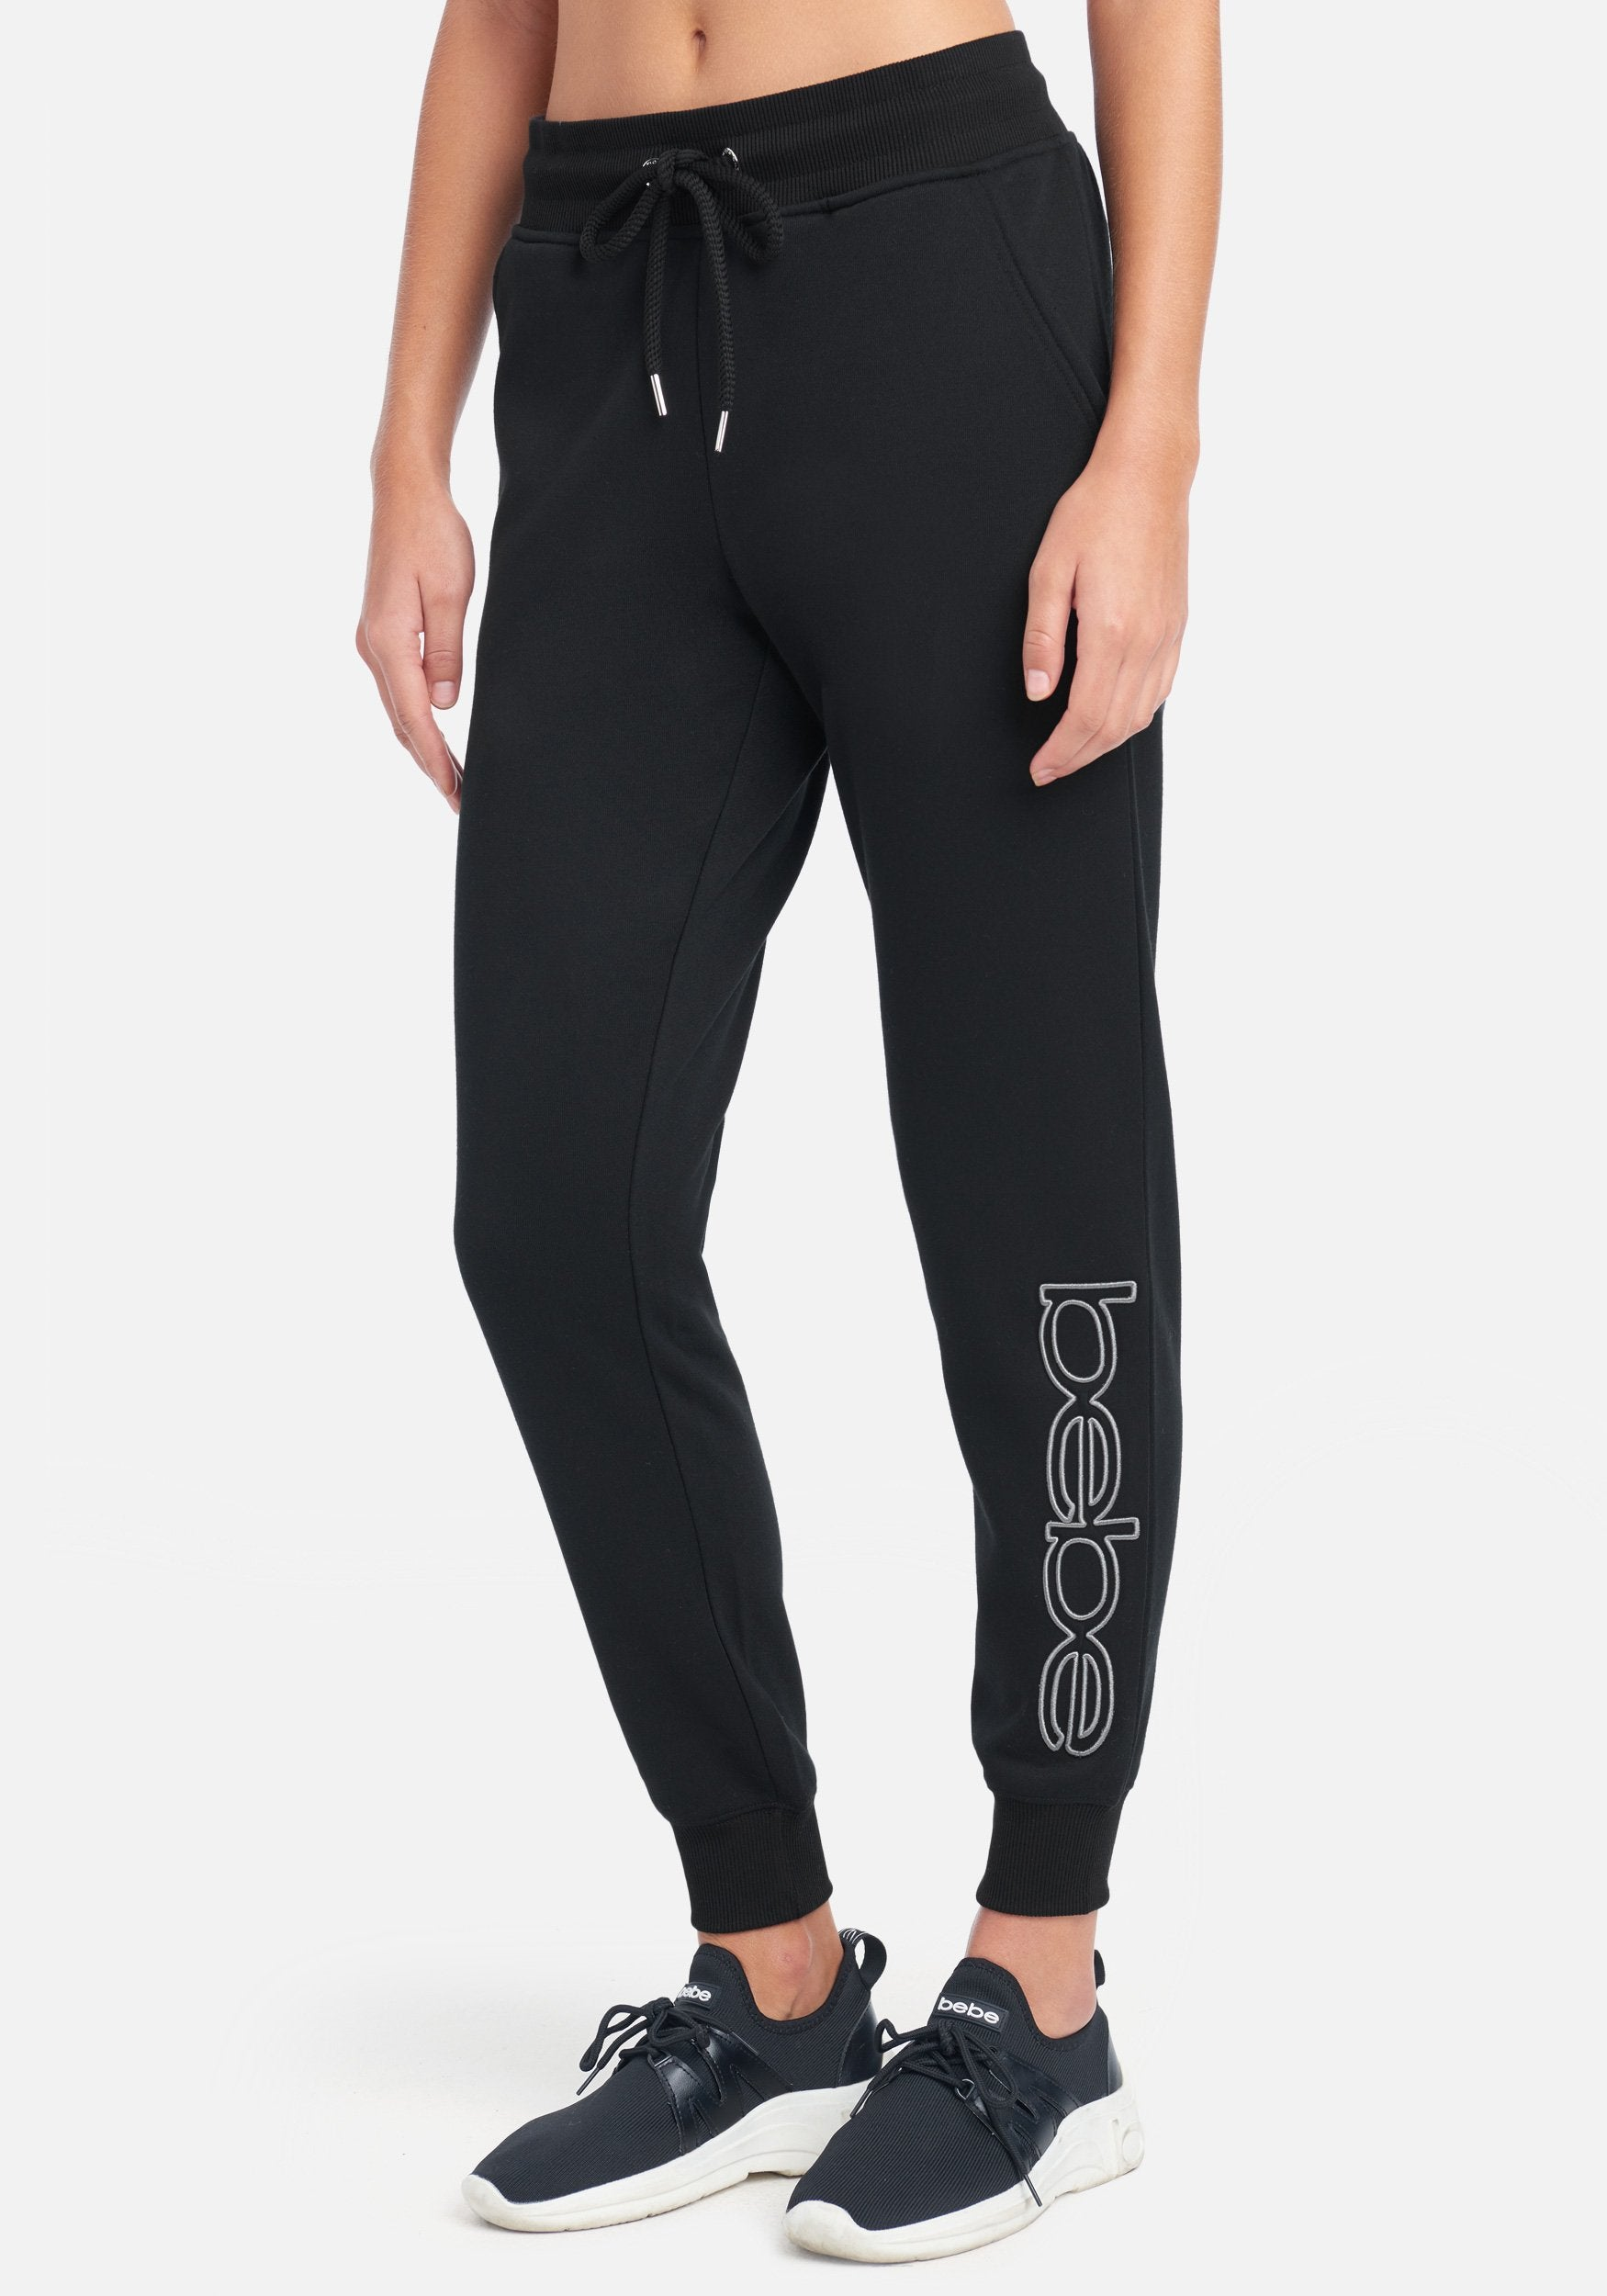 Women's Bebe Sport Embroidered Logo Jogger Pant, Size Small in Black Cotton